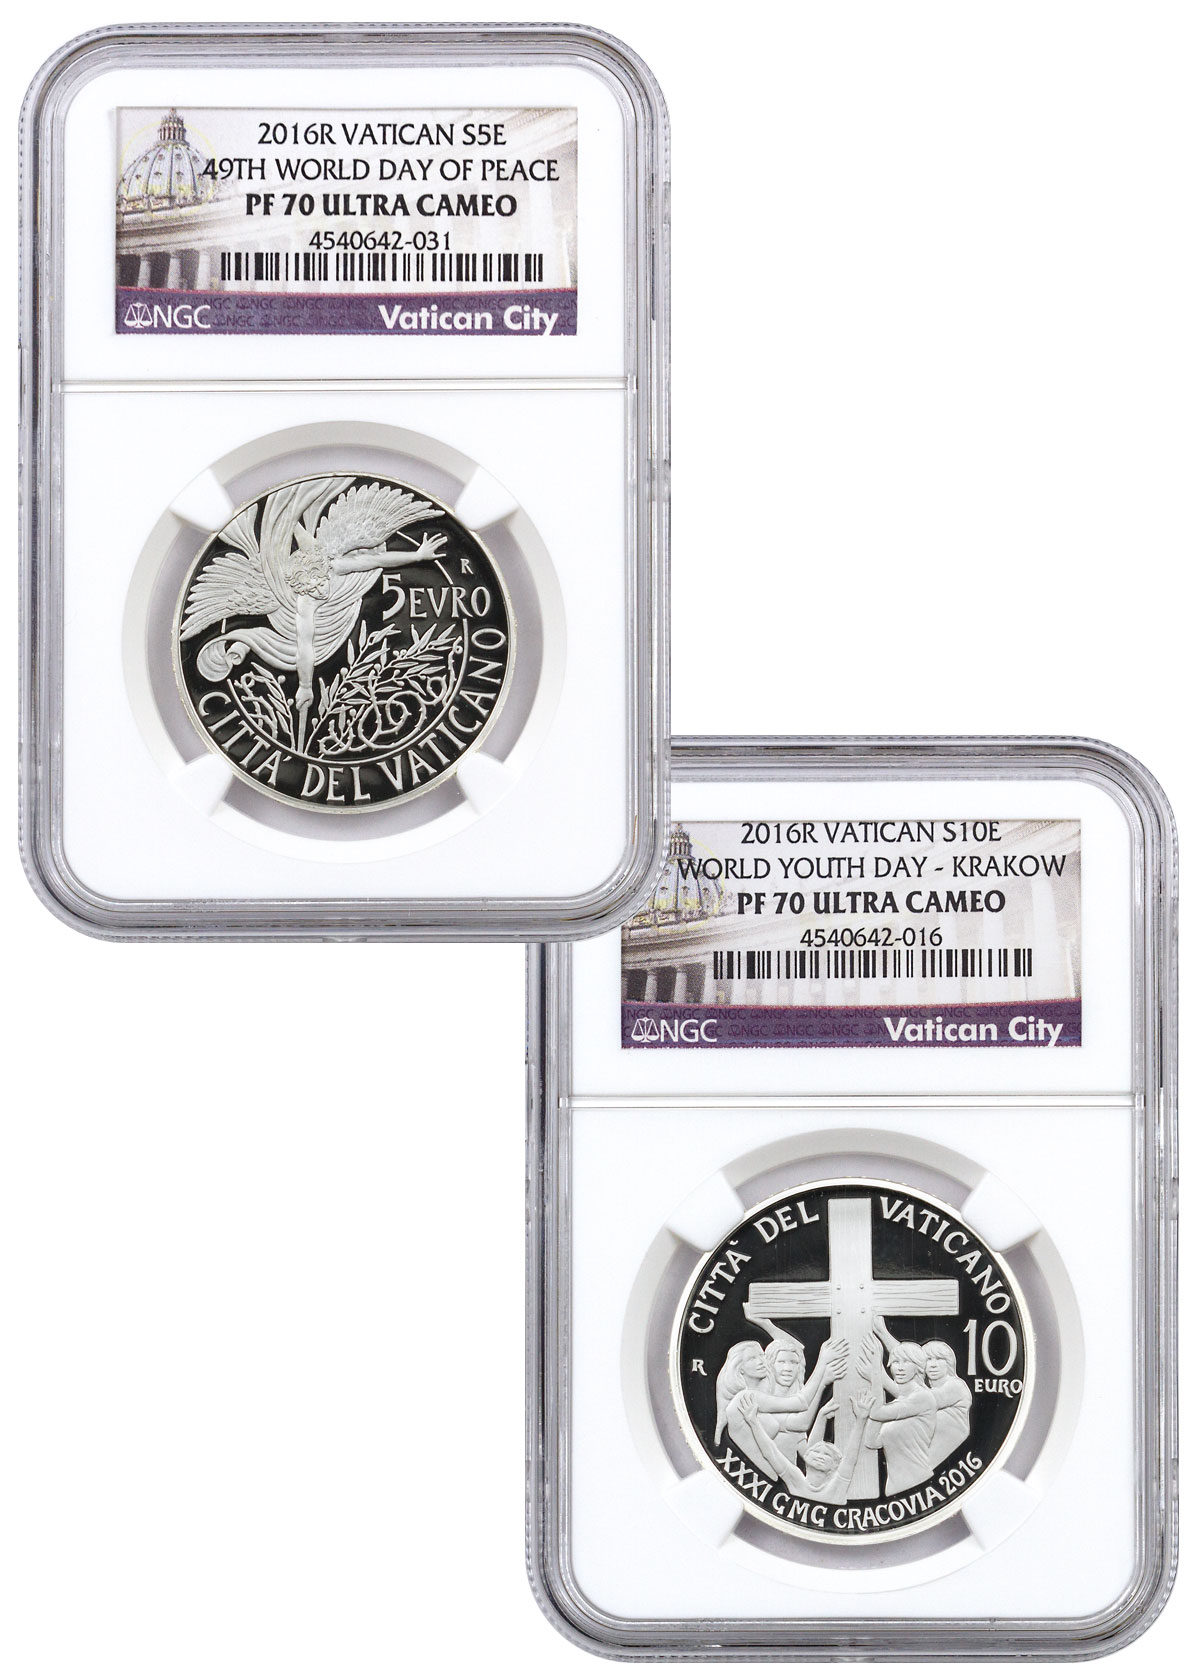 2016-R Vatican City 49th World Day of Peace and World Youth Day Silver Proof Coins NGC PF70 UC (Exclusive Vatican City Label)